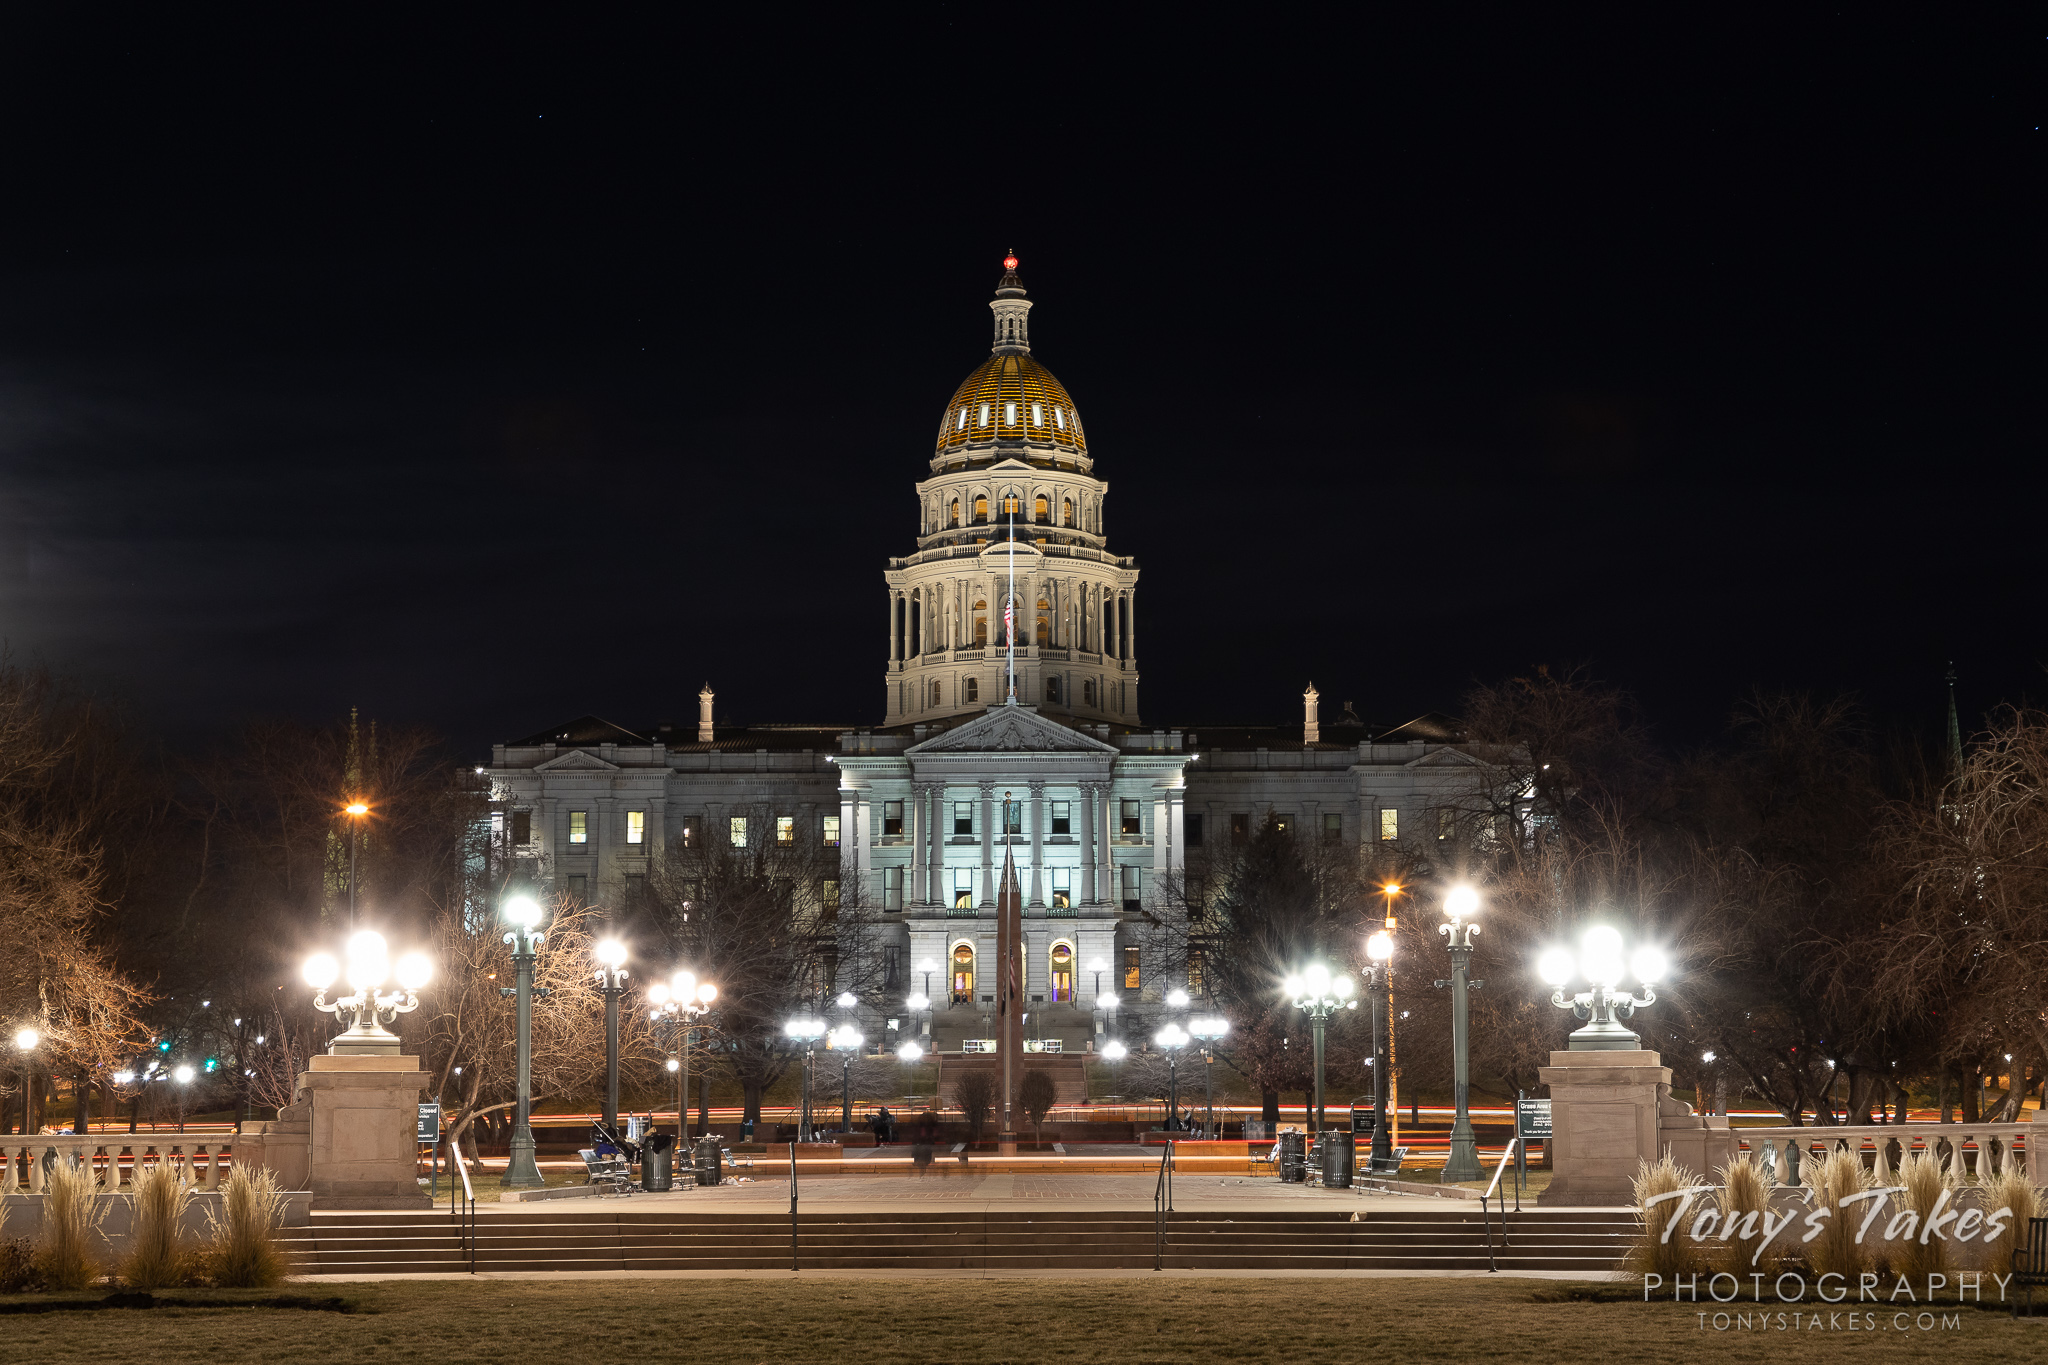 The Colorado state capitol building in downtown Denver at night. (© Tony's Takes)